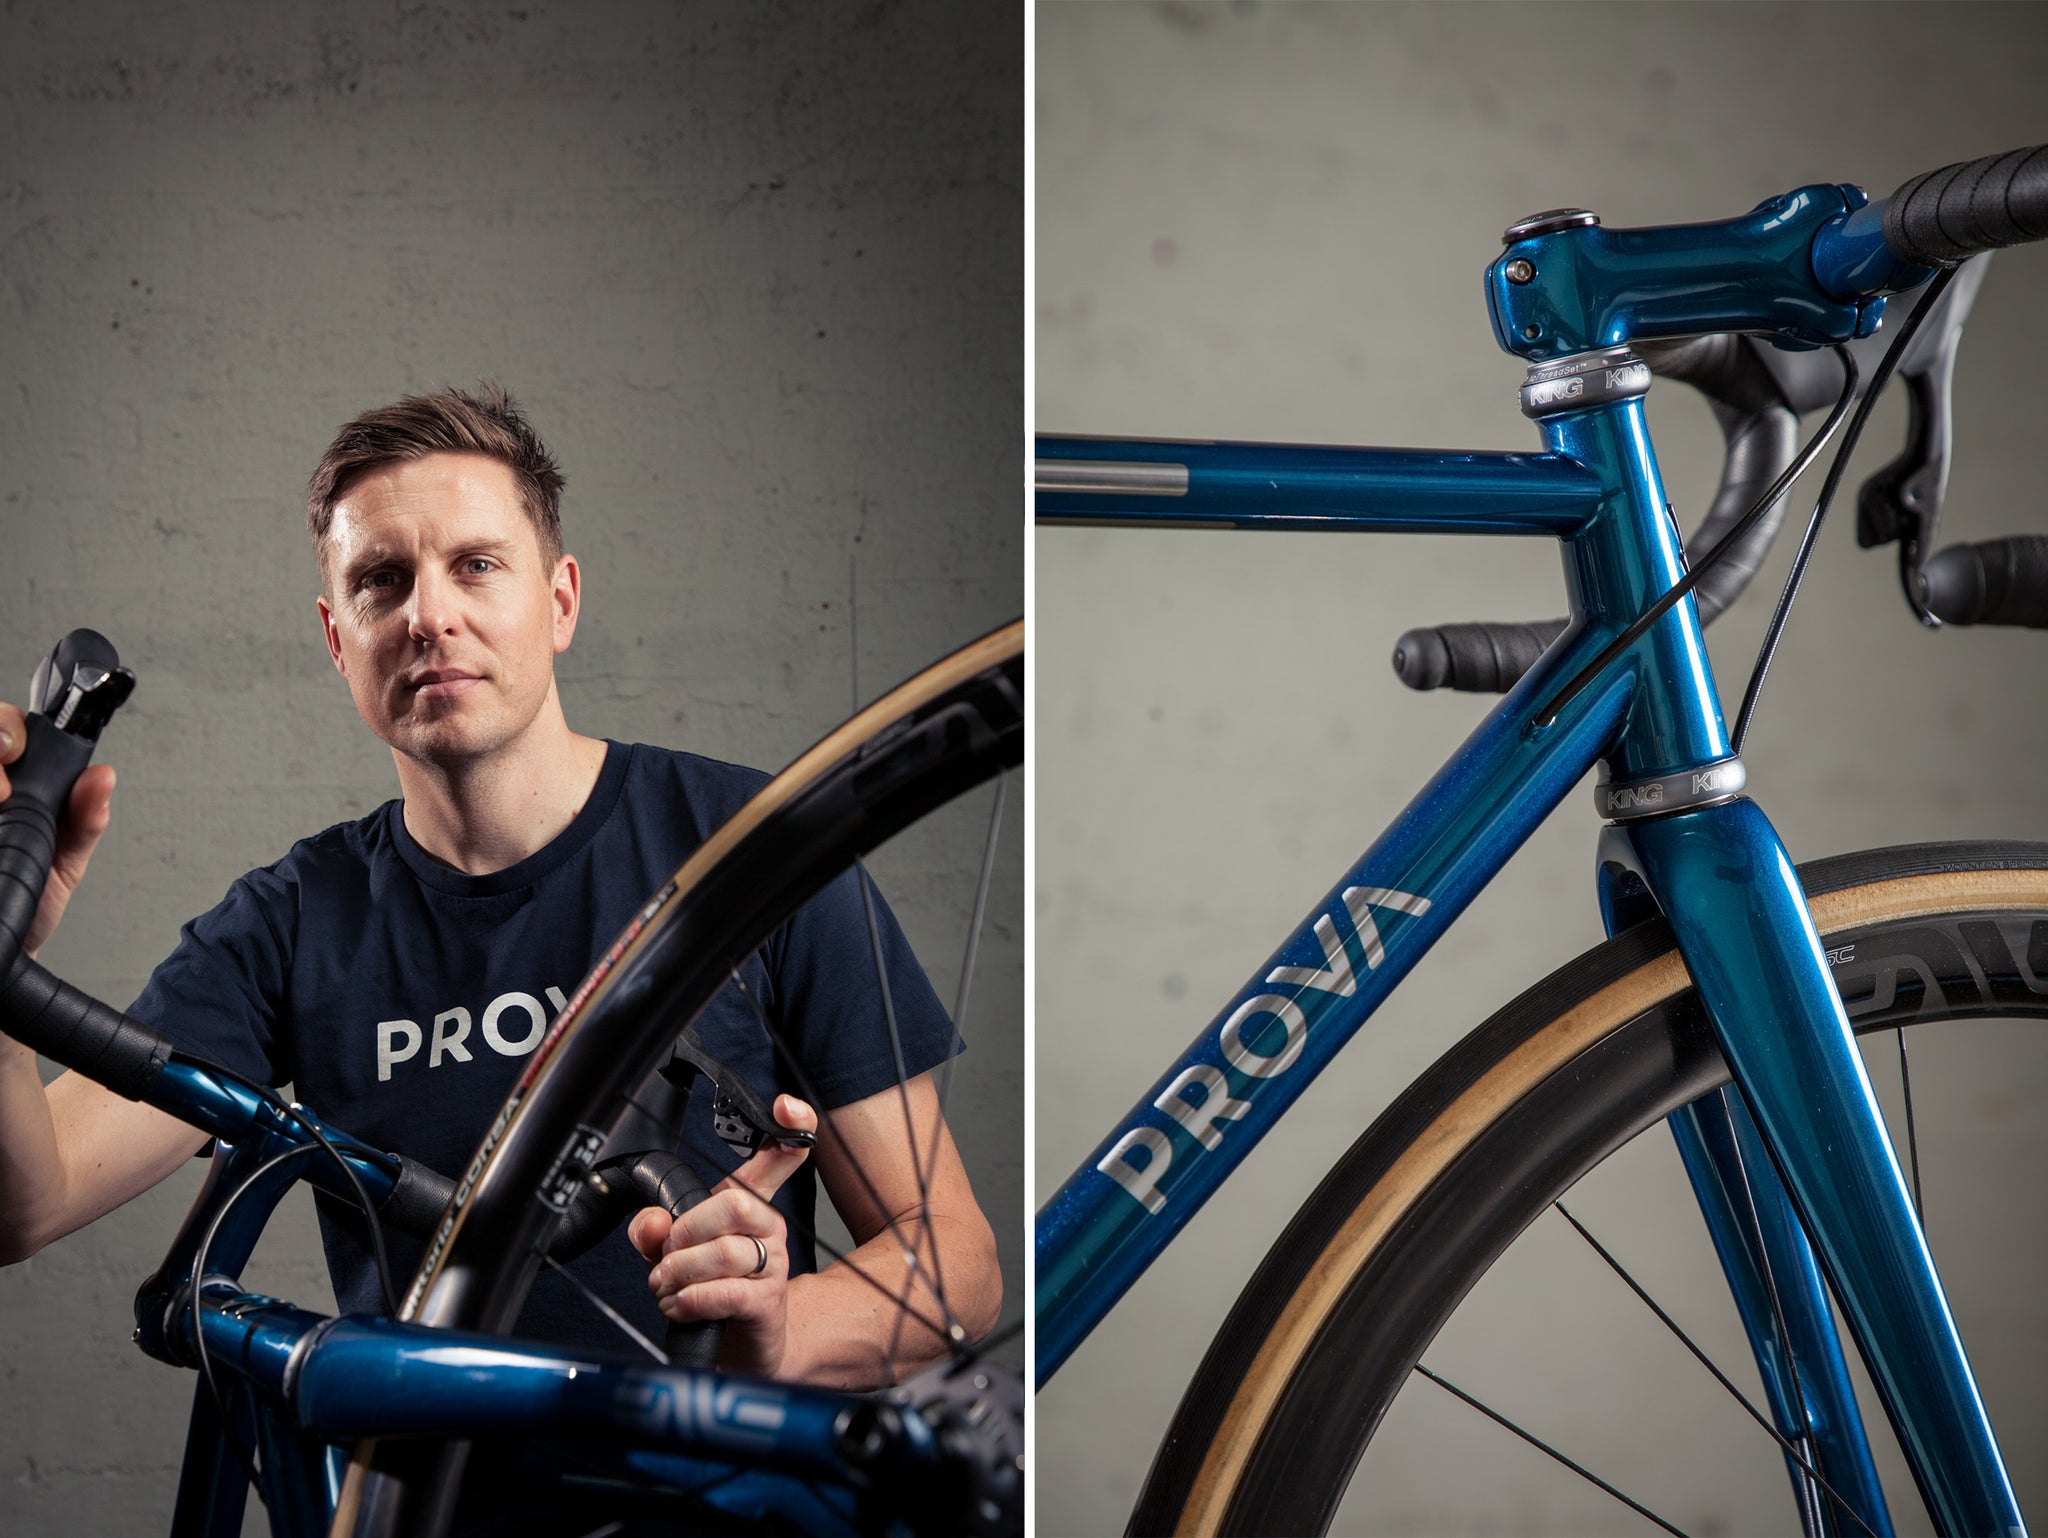 who is mark hester prova cycles